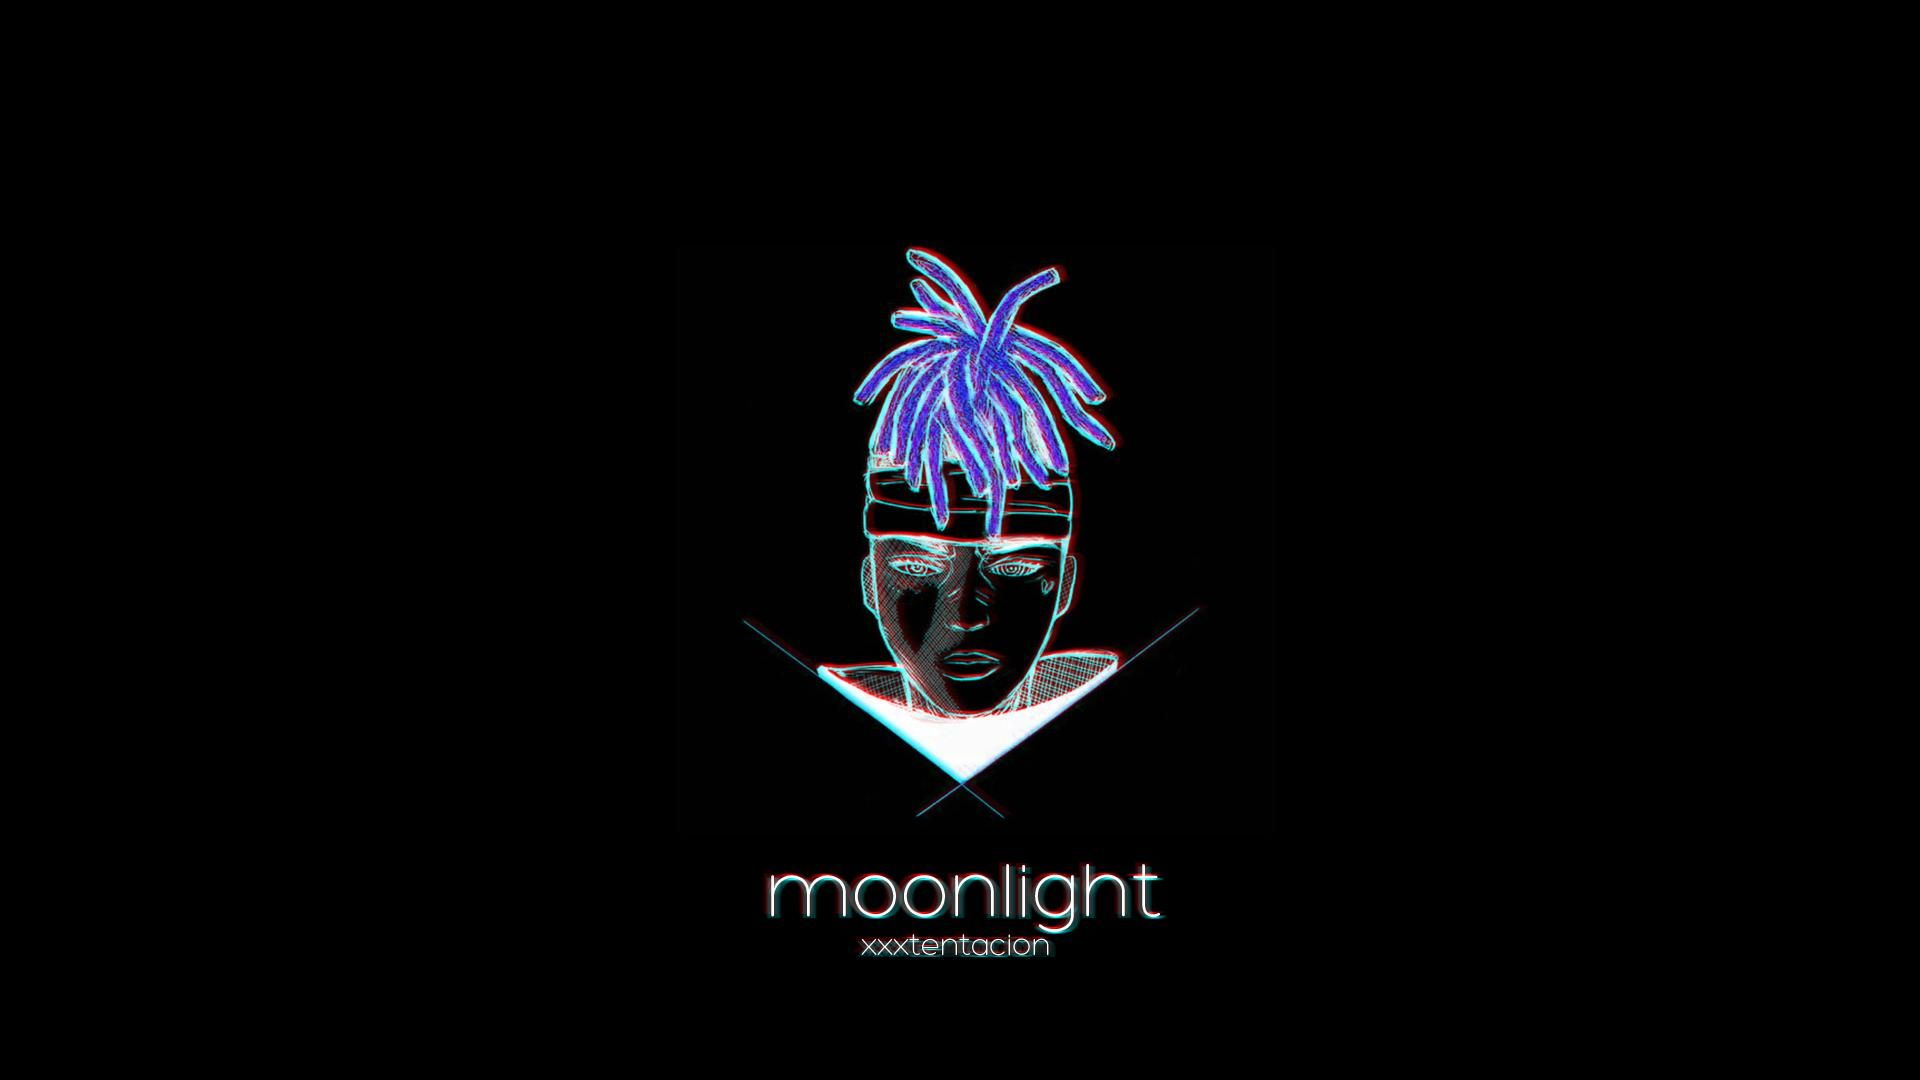 1920x1080 Moonlight Wallpaper XXXTENTACION Places to visit in 1920x1080